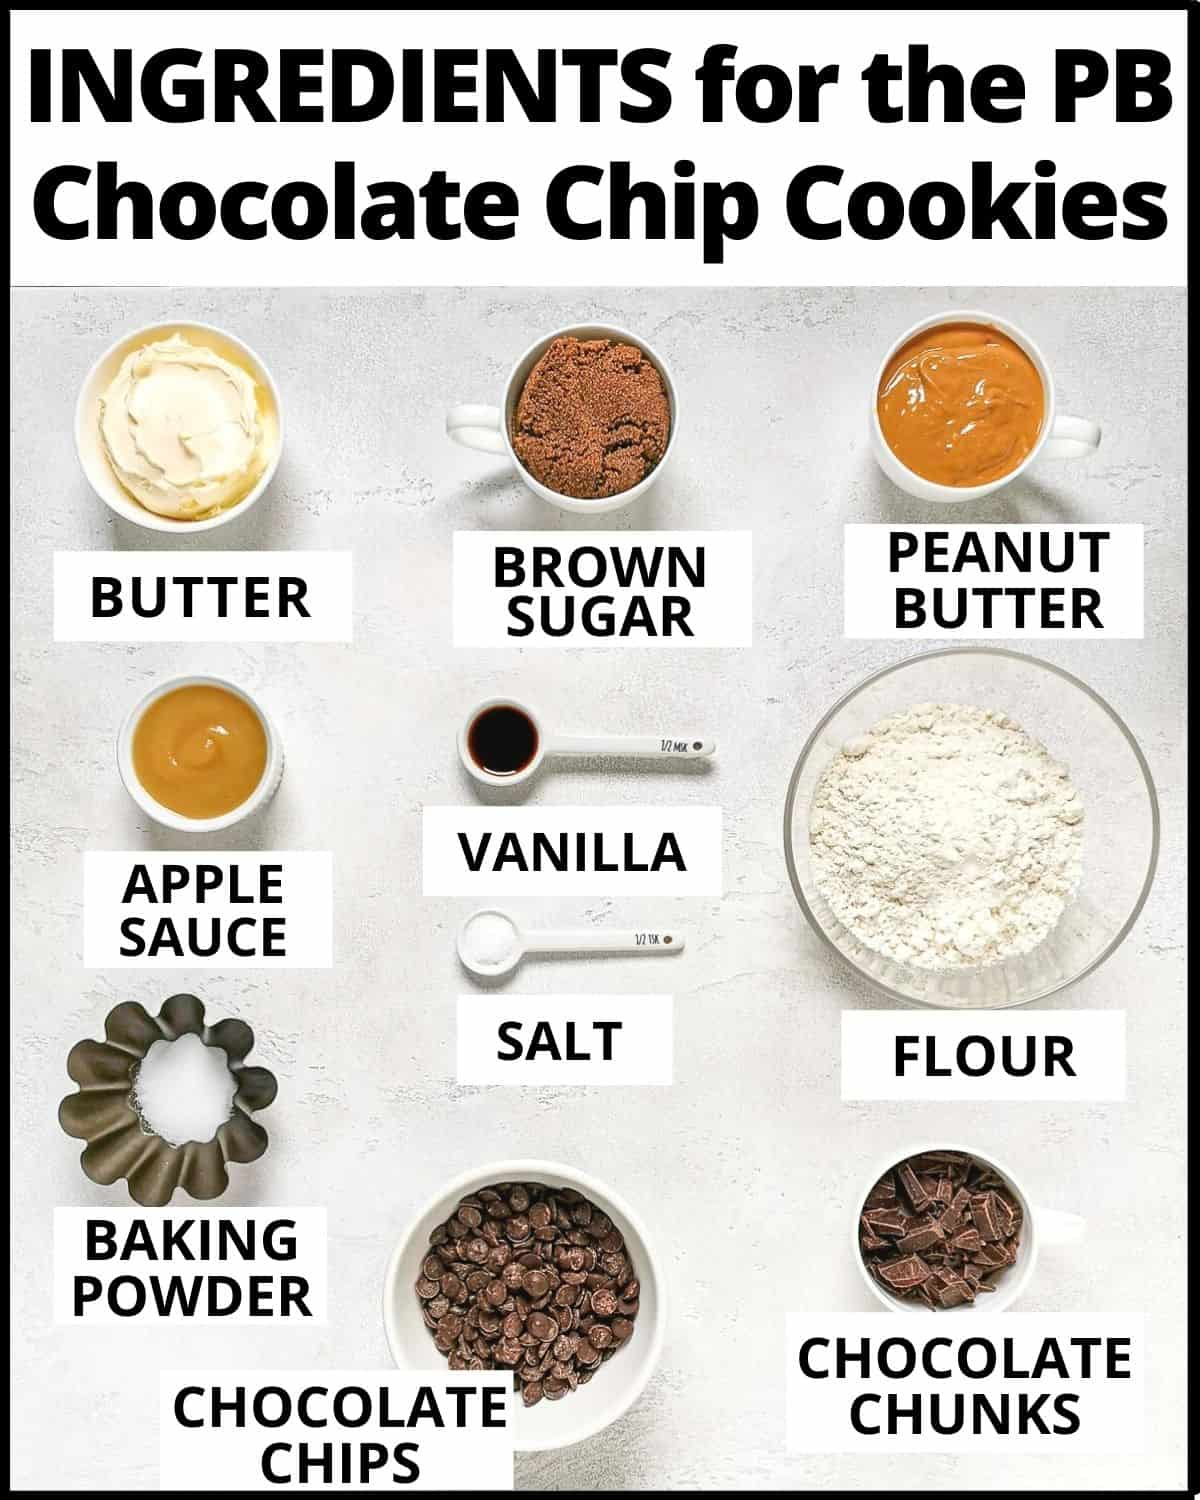 Ingredients for the peanut butter chocolate chip cookies